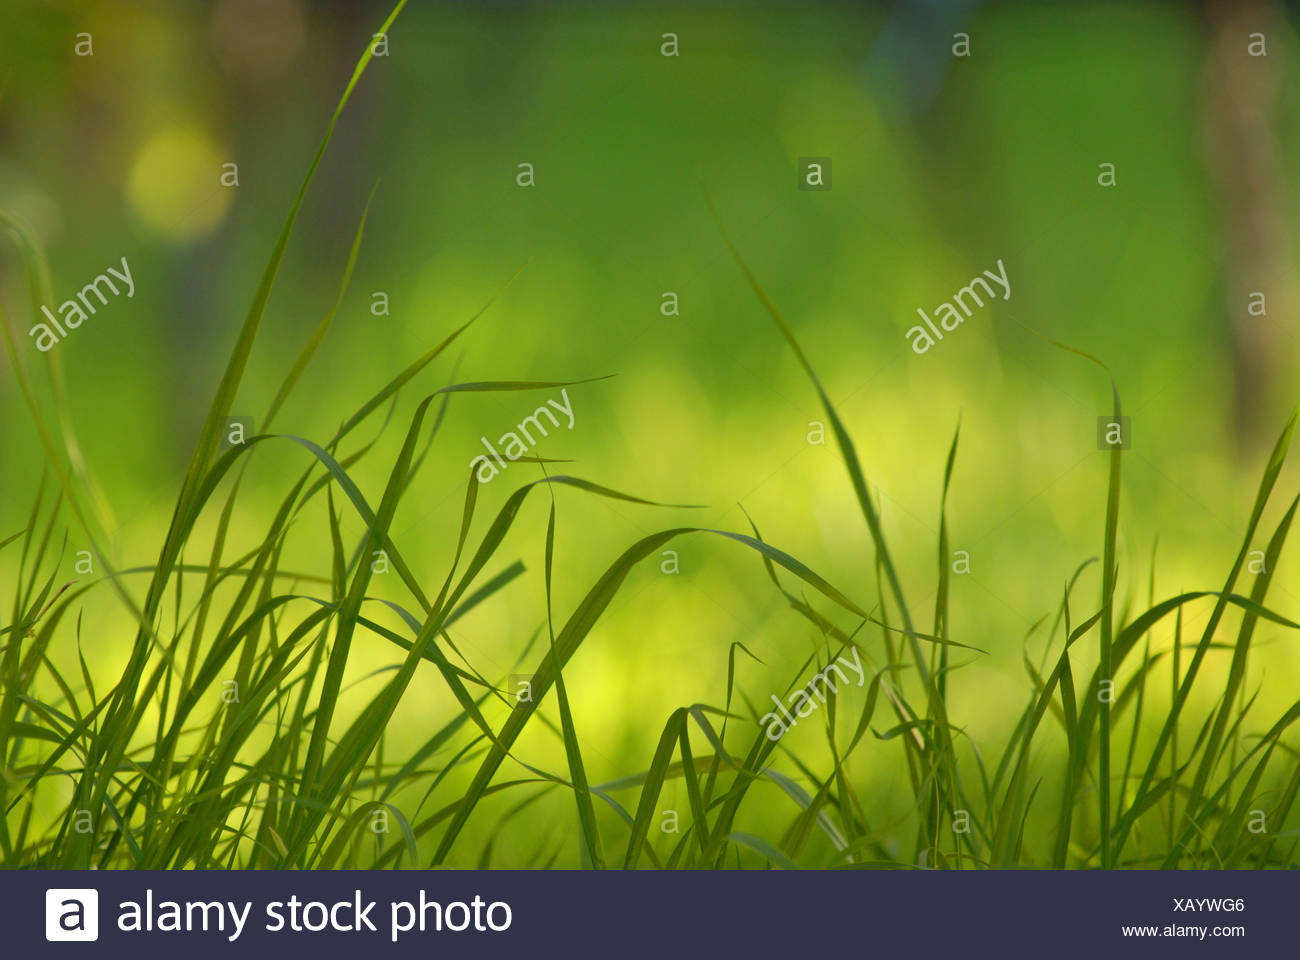 Close-up of blades of grass - Stock Image